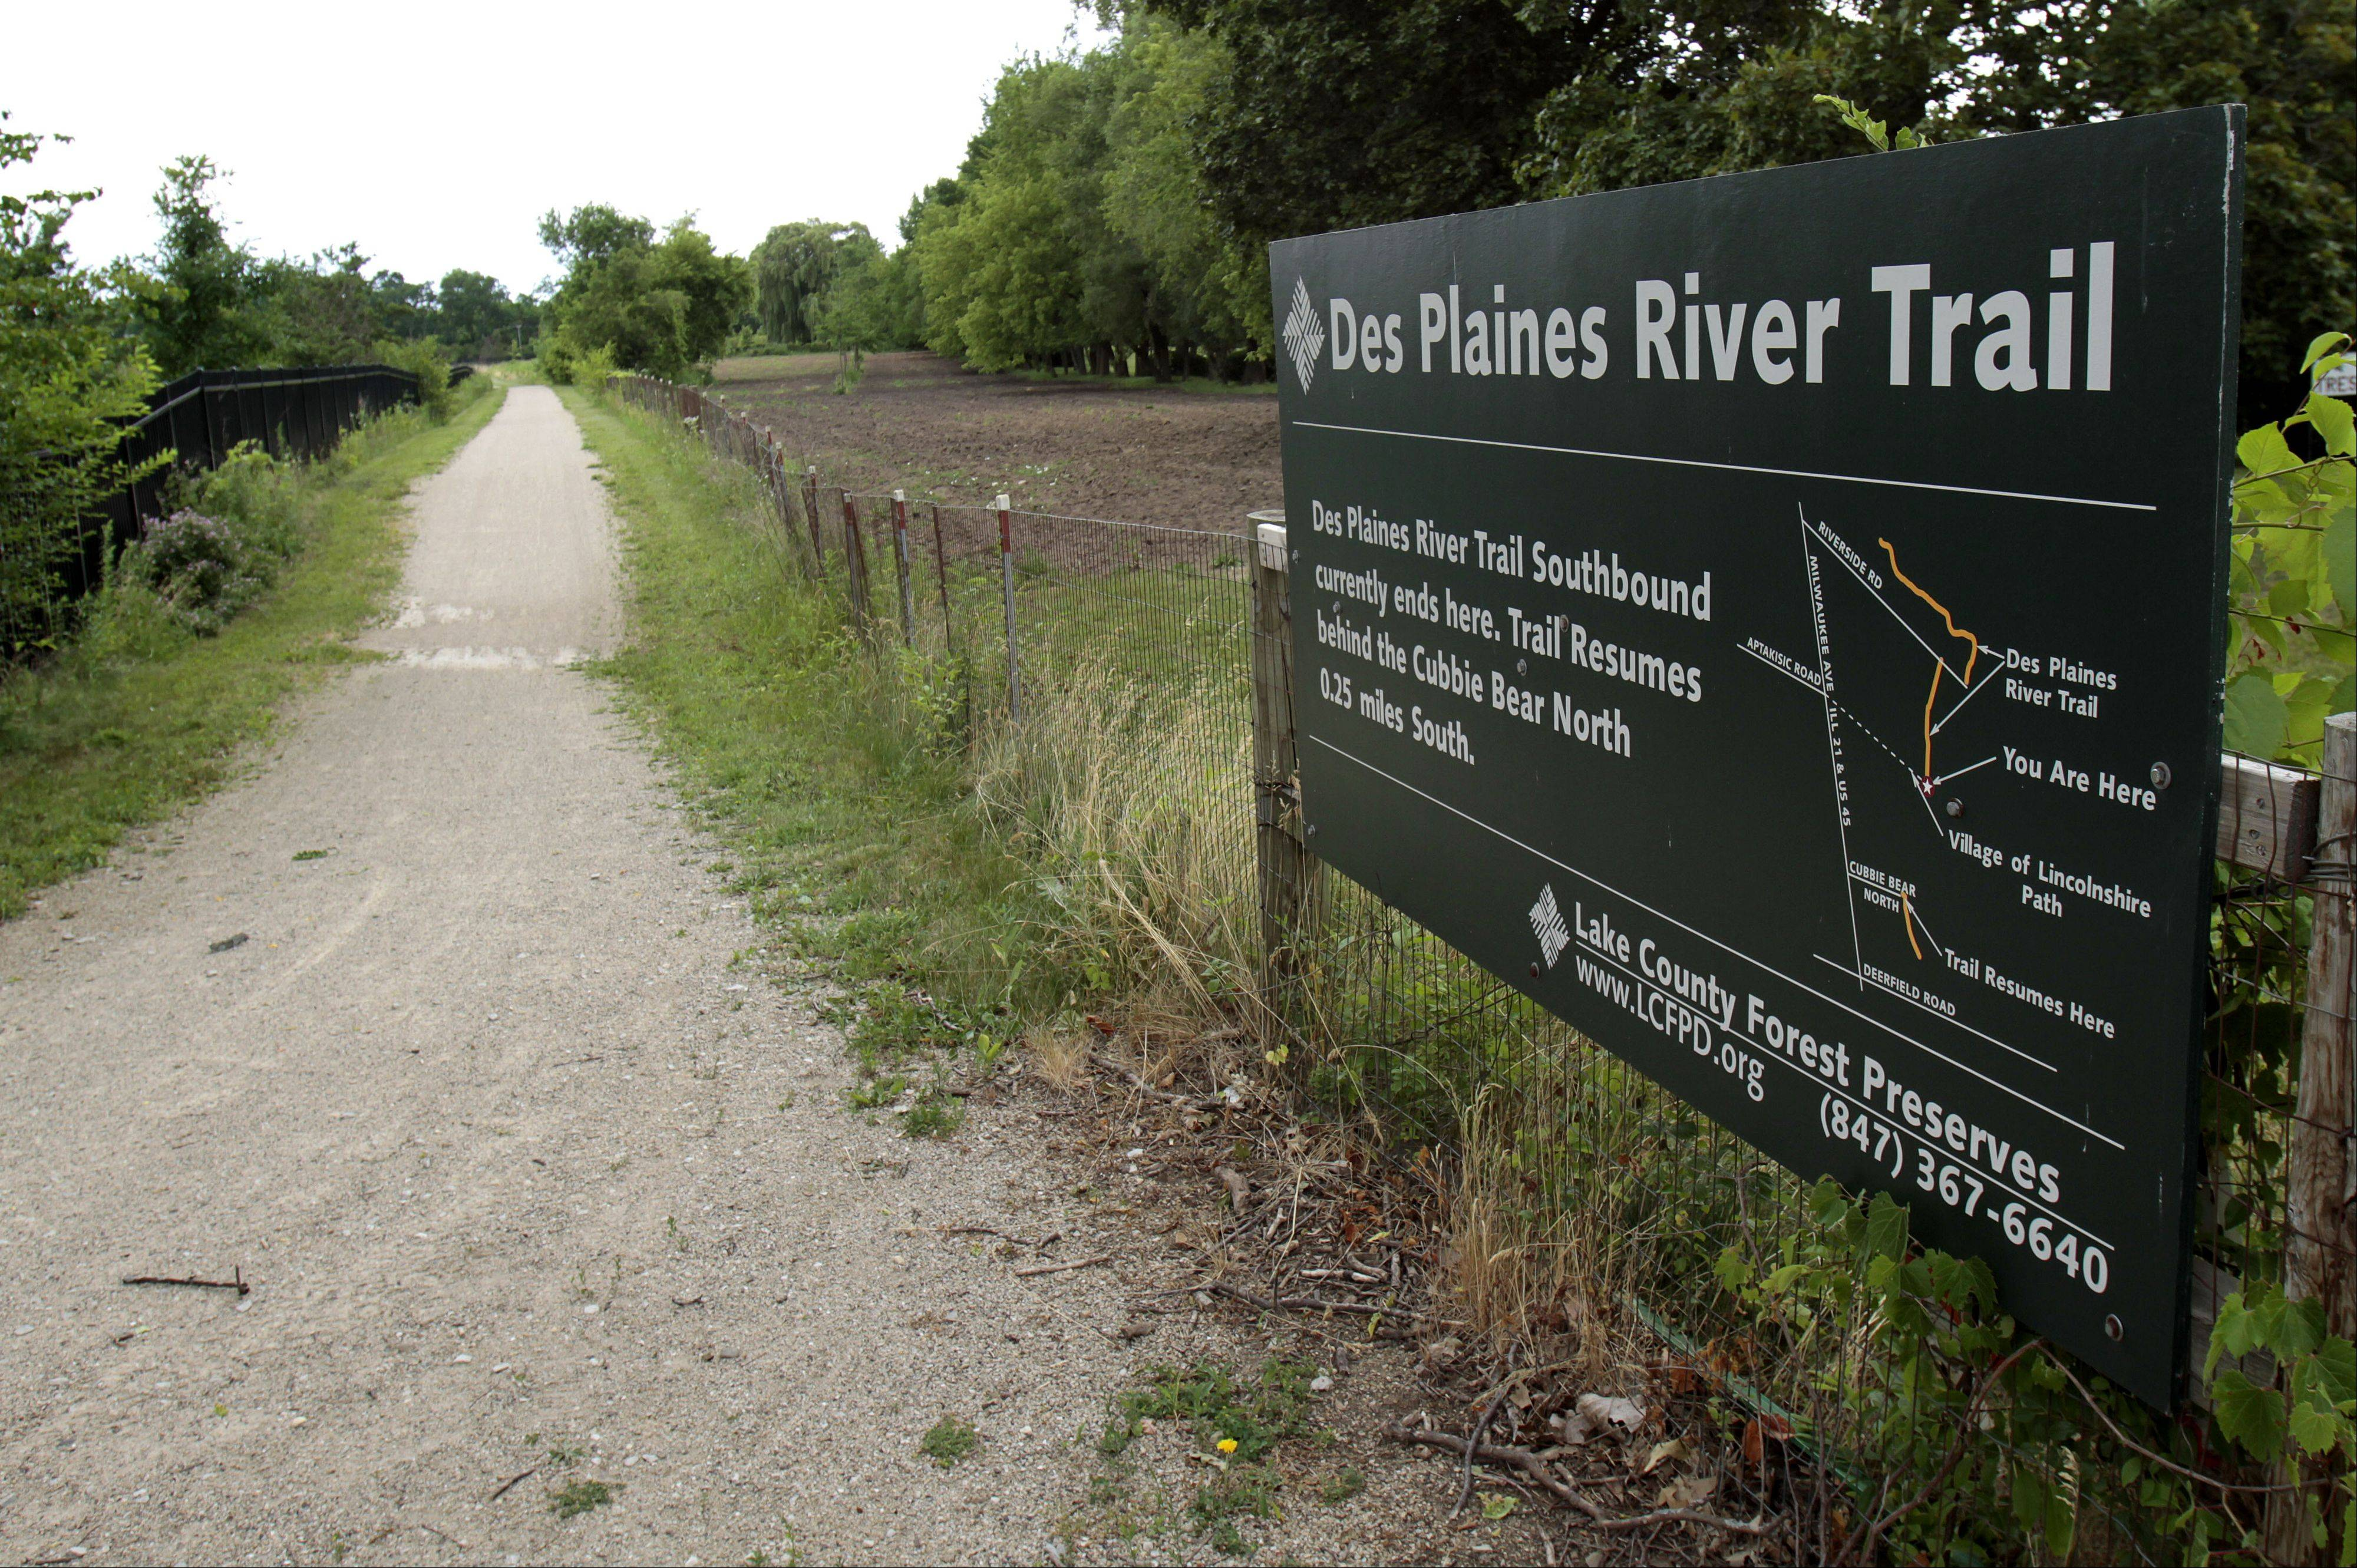 A 1,500-foot stretch of land behind the Par King Skill Golf course near Lincolnshire is needed to finish the Des Plaines River Trail.